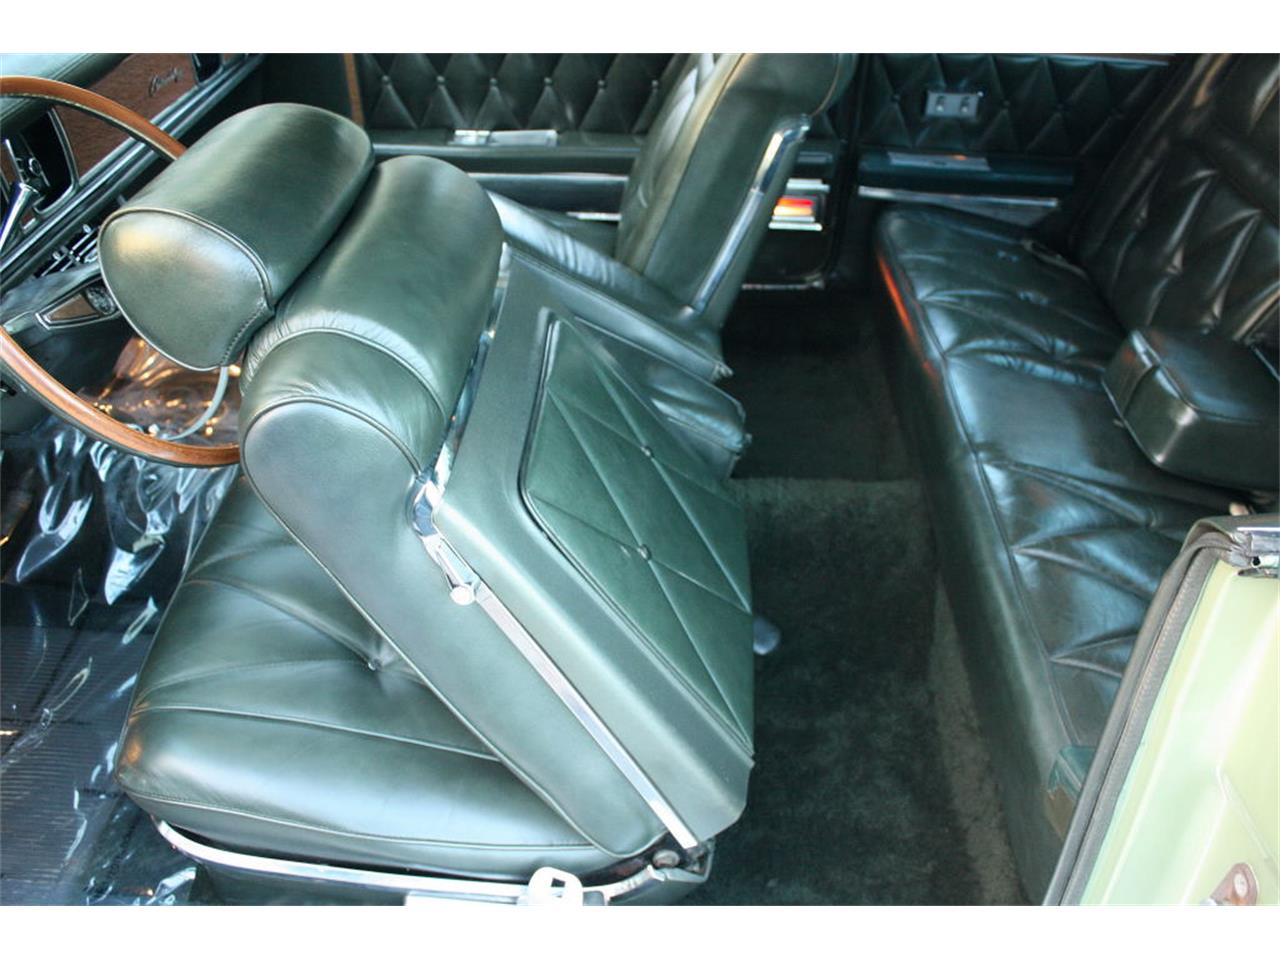 Large Picture of Classic 1969 Lincoln Continental Mark III located in Florida - $24,500.00 Offered by MJC Classic Cars - OPDW